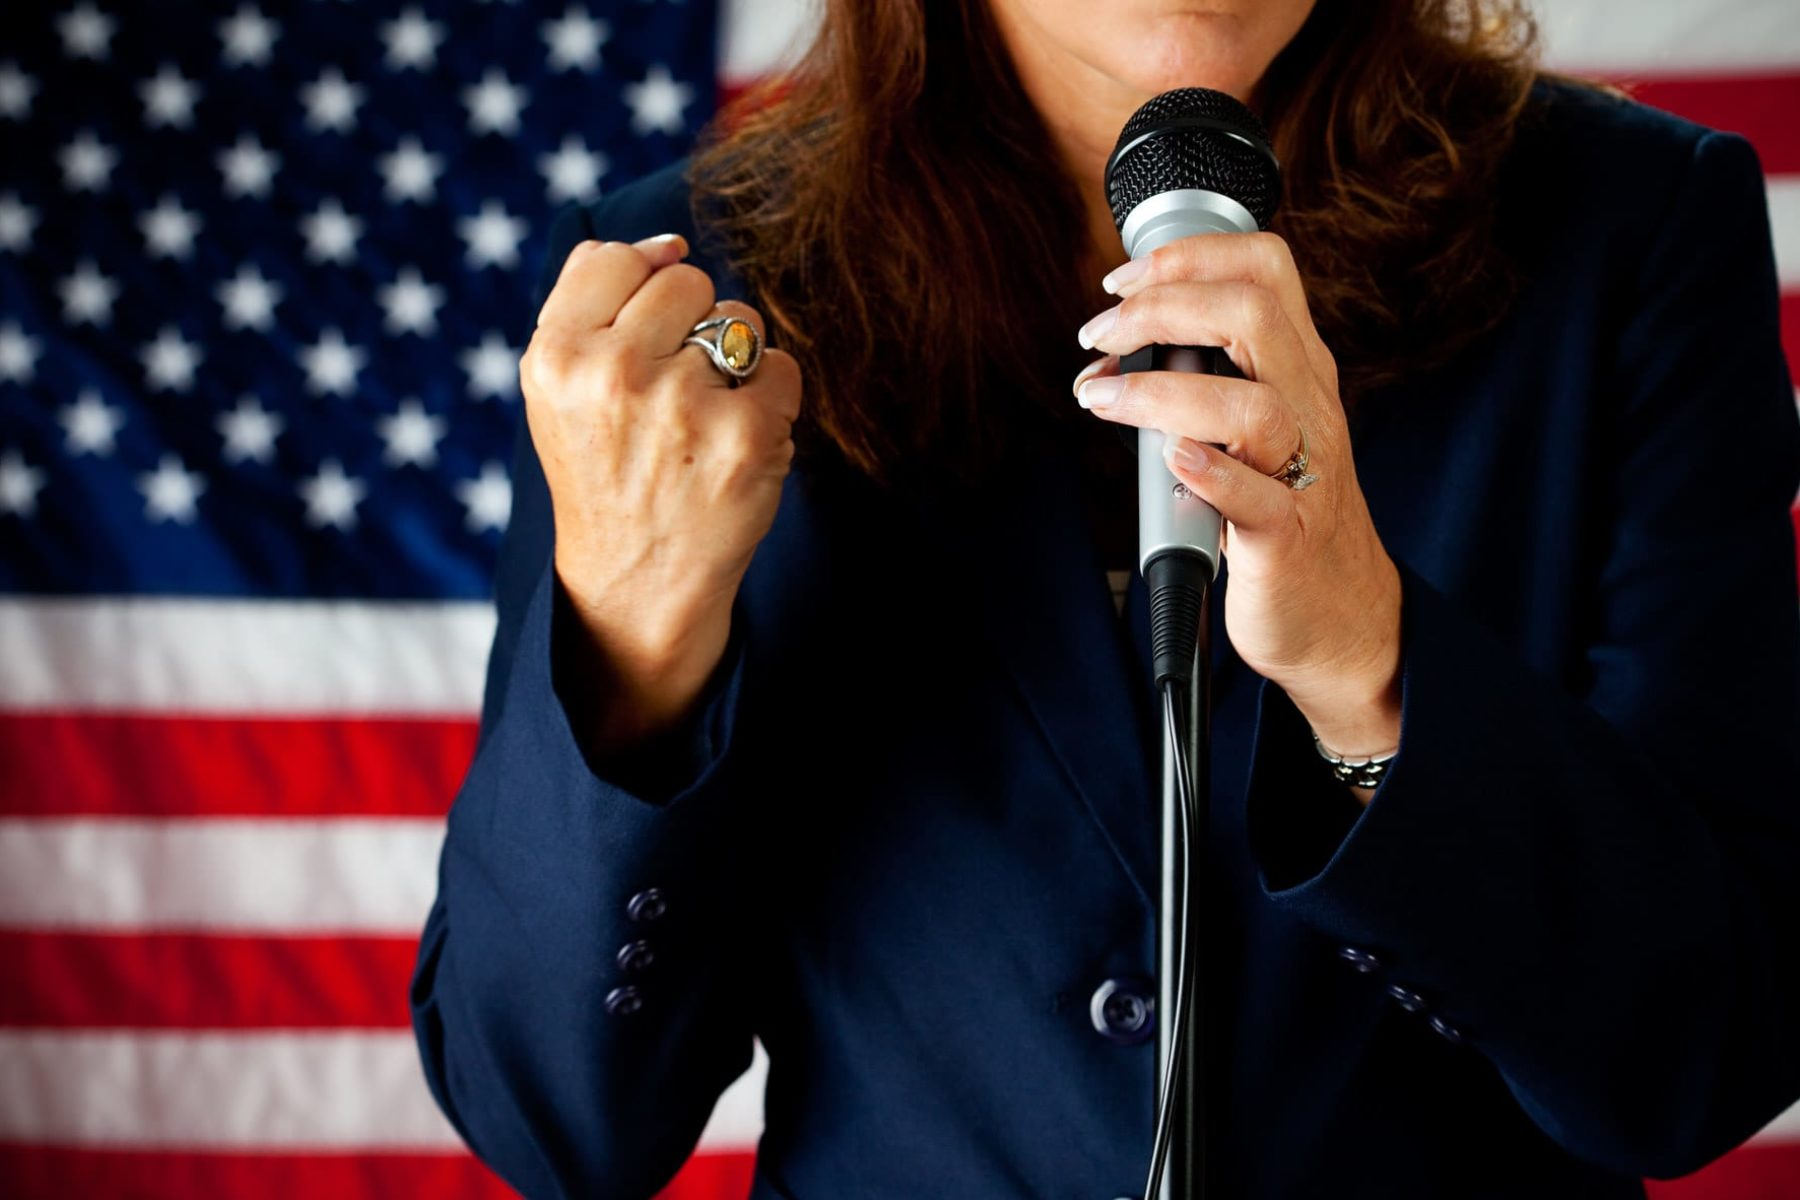 A woman candidate standing in front of an American flag.